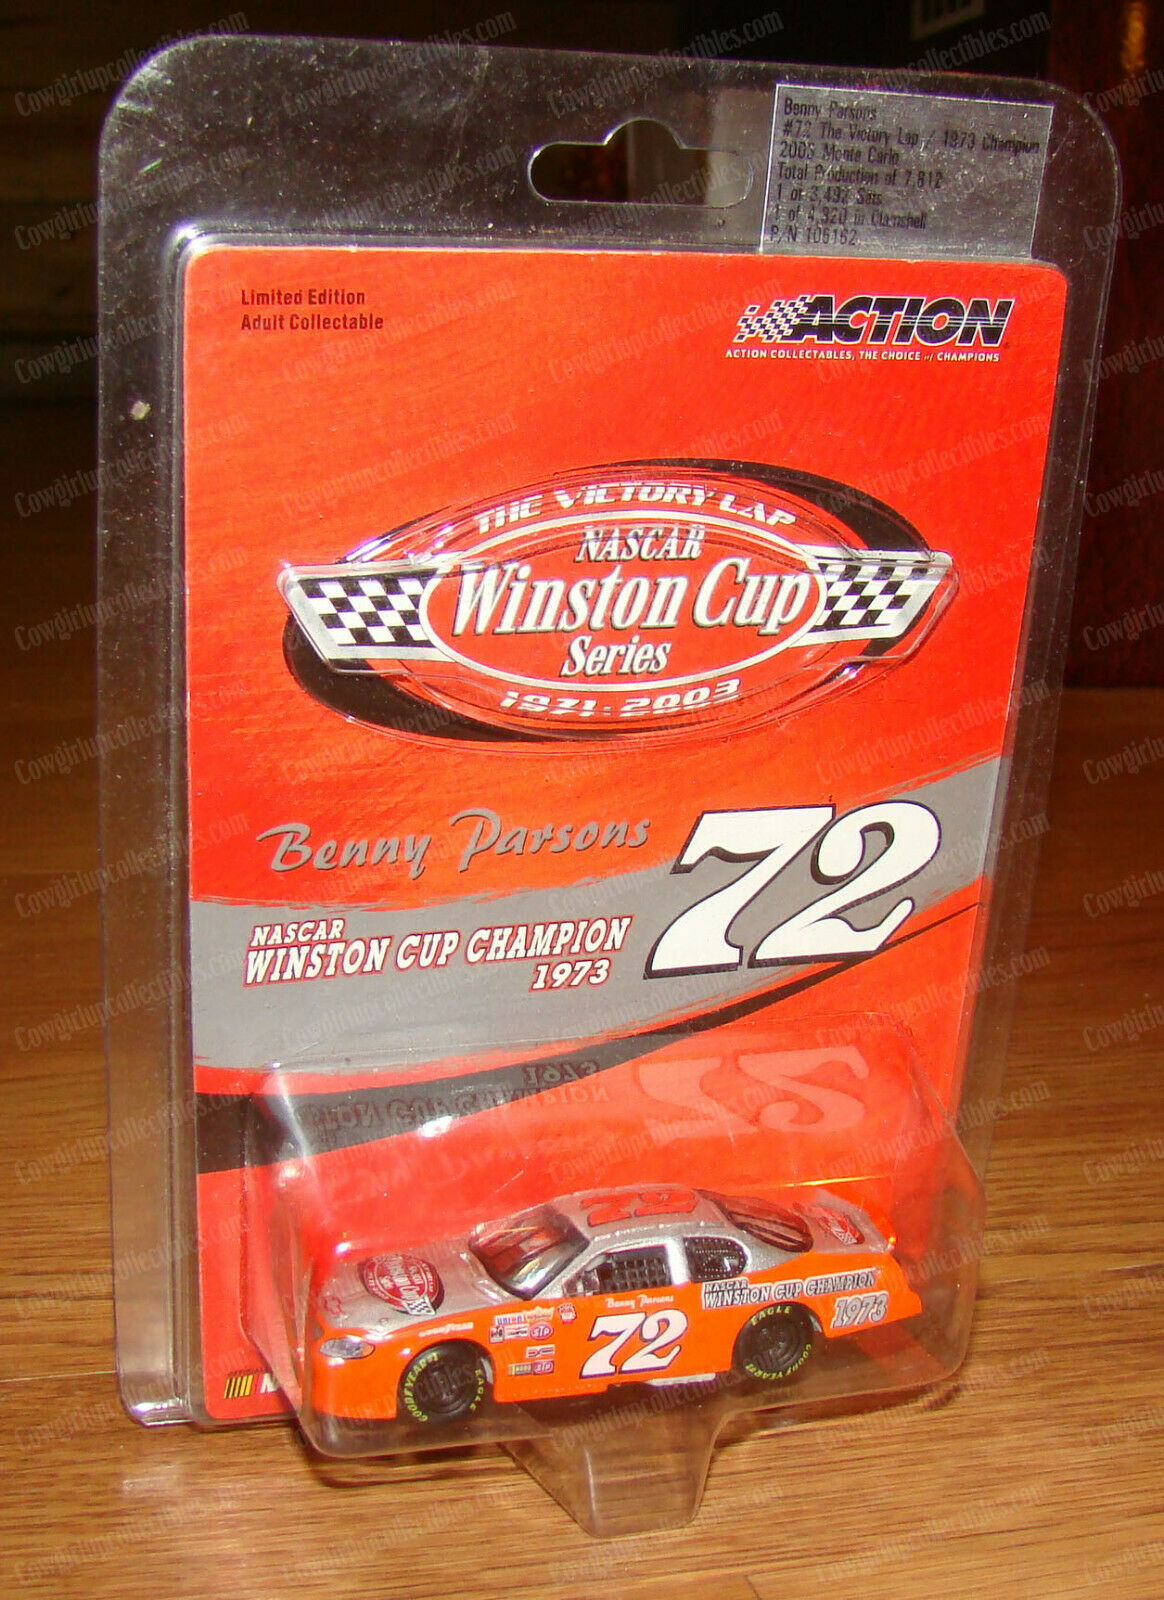 Racing Collectibles#1  1:64 scale NASCARWinston Cup Stock Cars and more